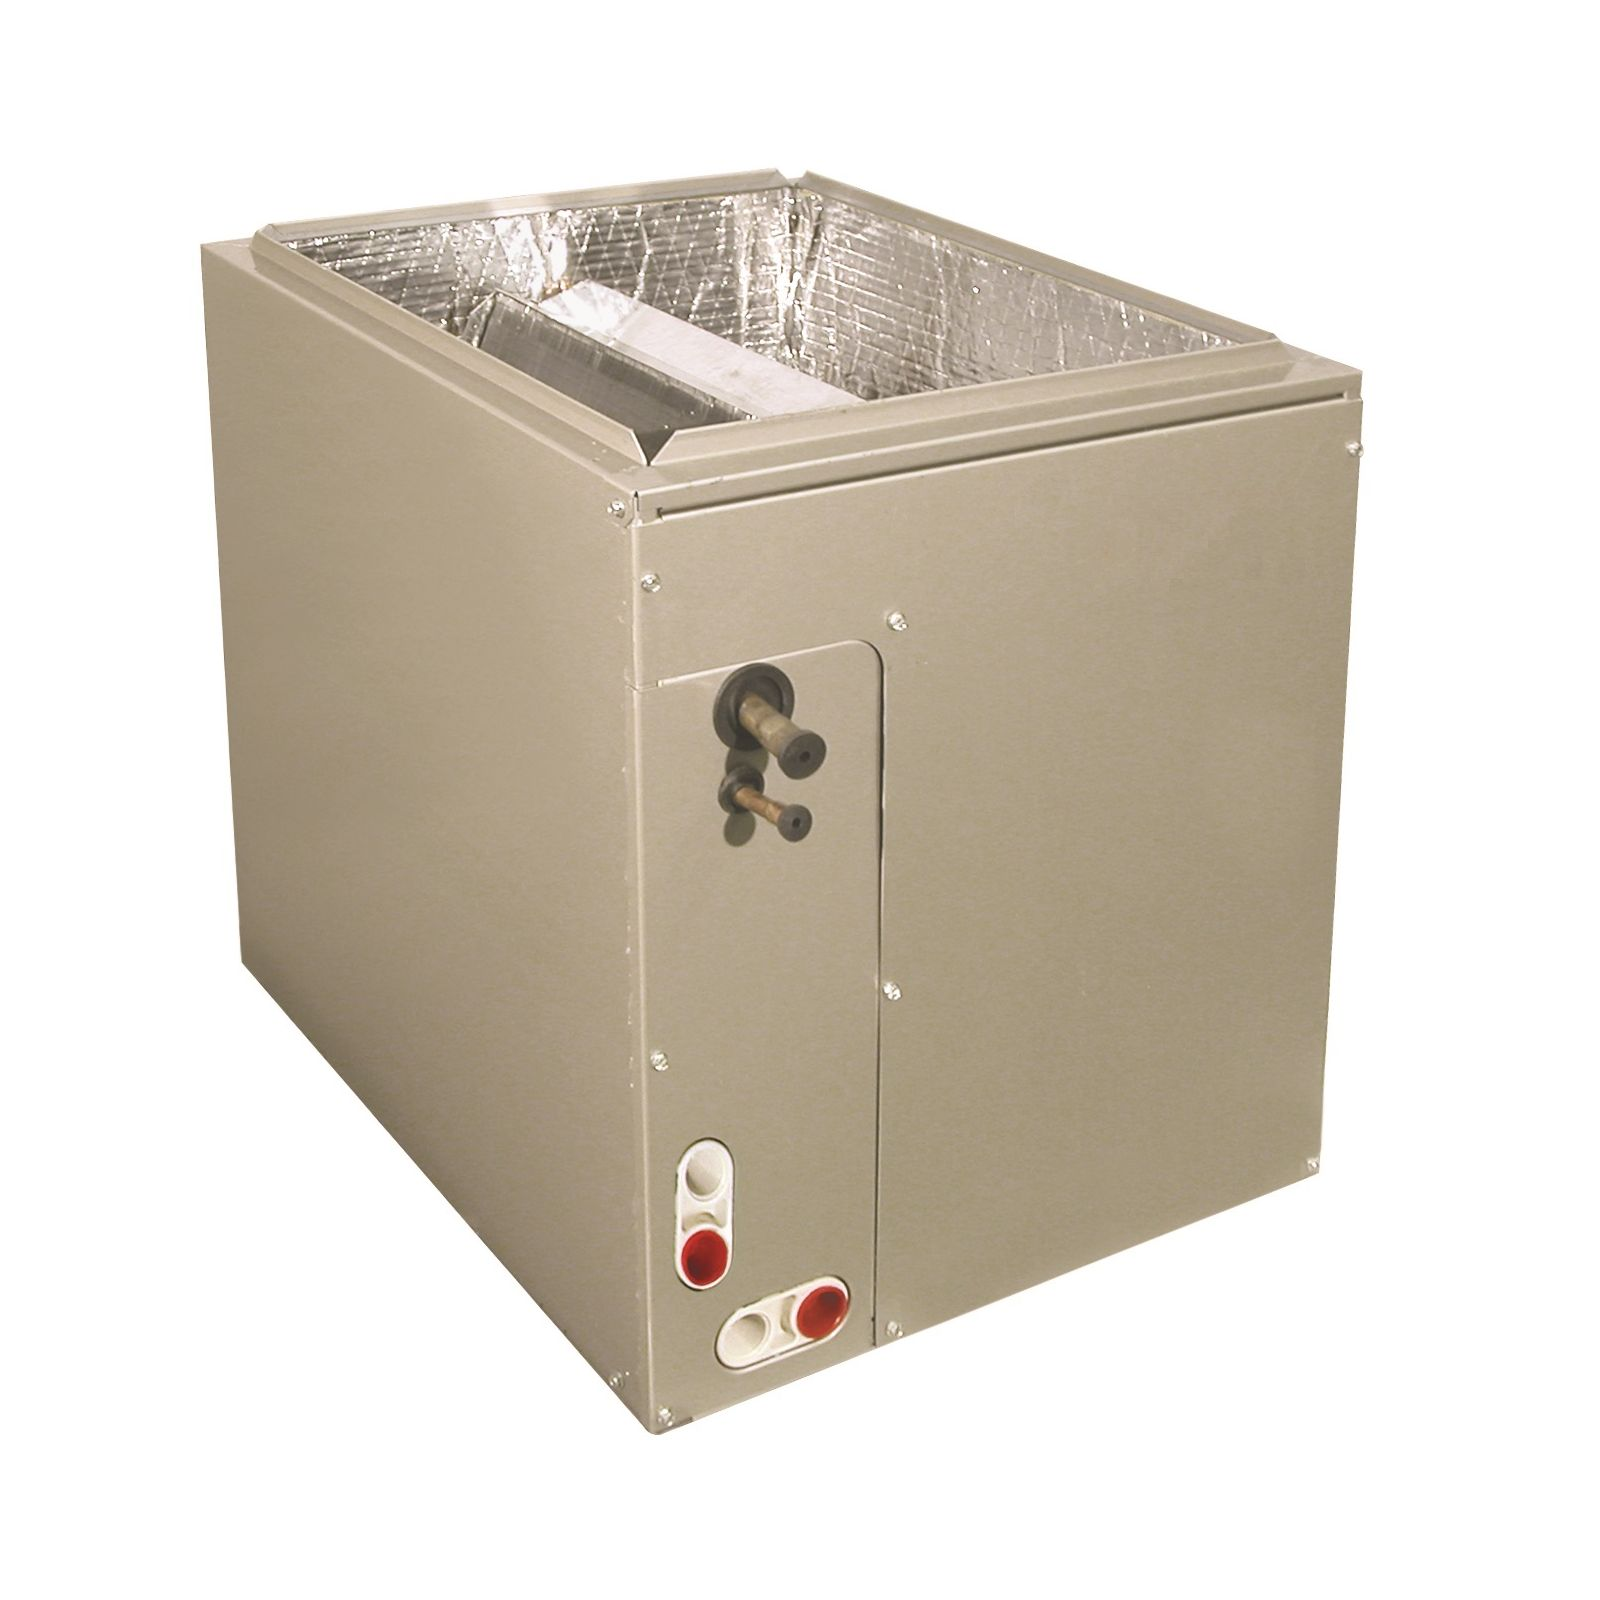 "Tempstar EAM4X36L17A - 3 Ton R410A Multi-position Cased Evaporator Coil 17.5"" Wide With TXV, Aluminum Tube and Fins"